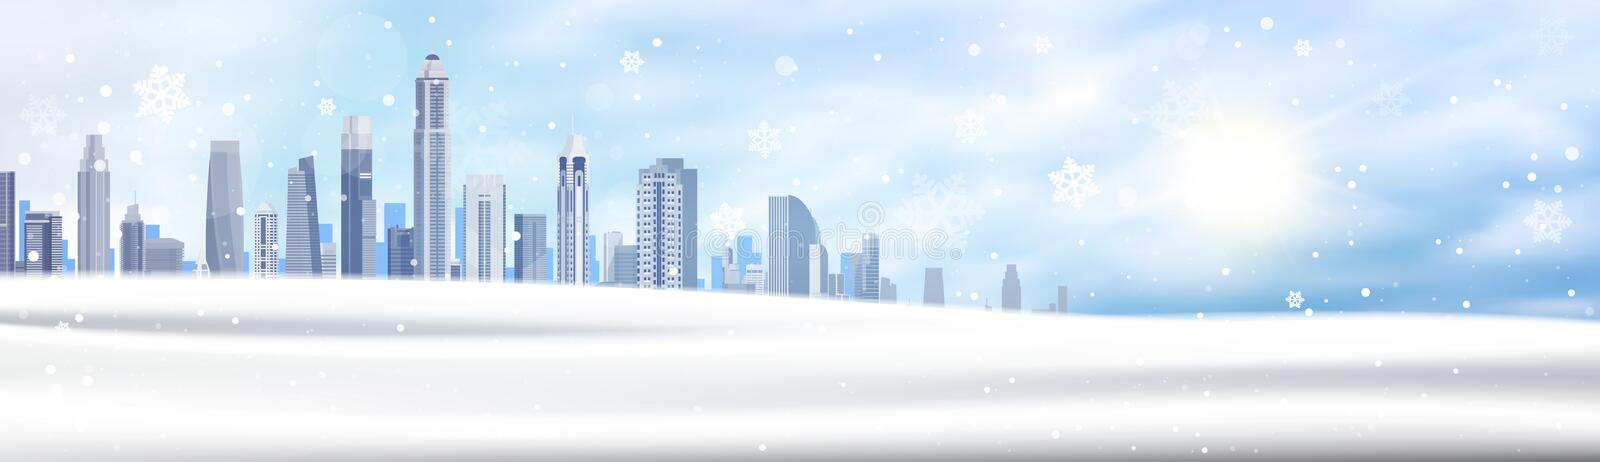 Winter Background Snowy City Landscape Horizontal Banner Snow White Buildings Blue Sky Christmas Concept. Flat Vector Illustration stock illustration